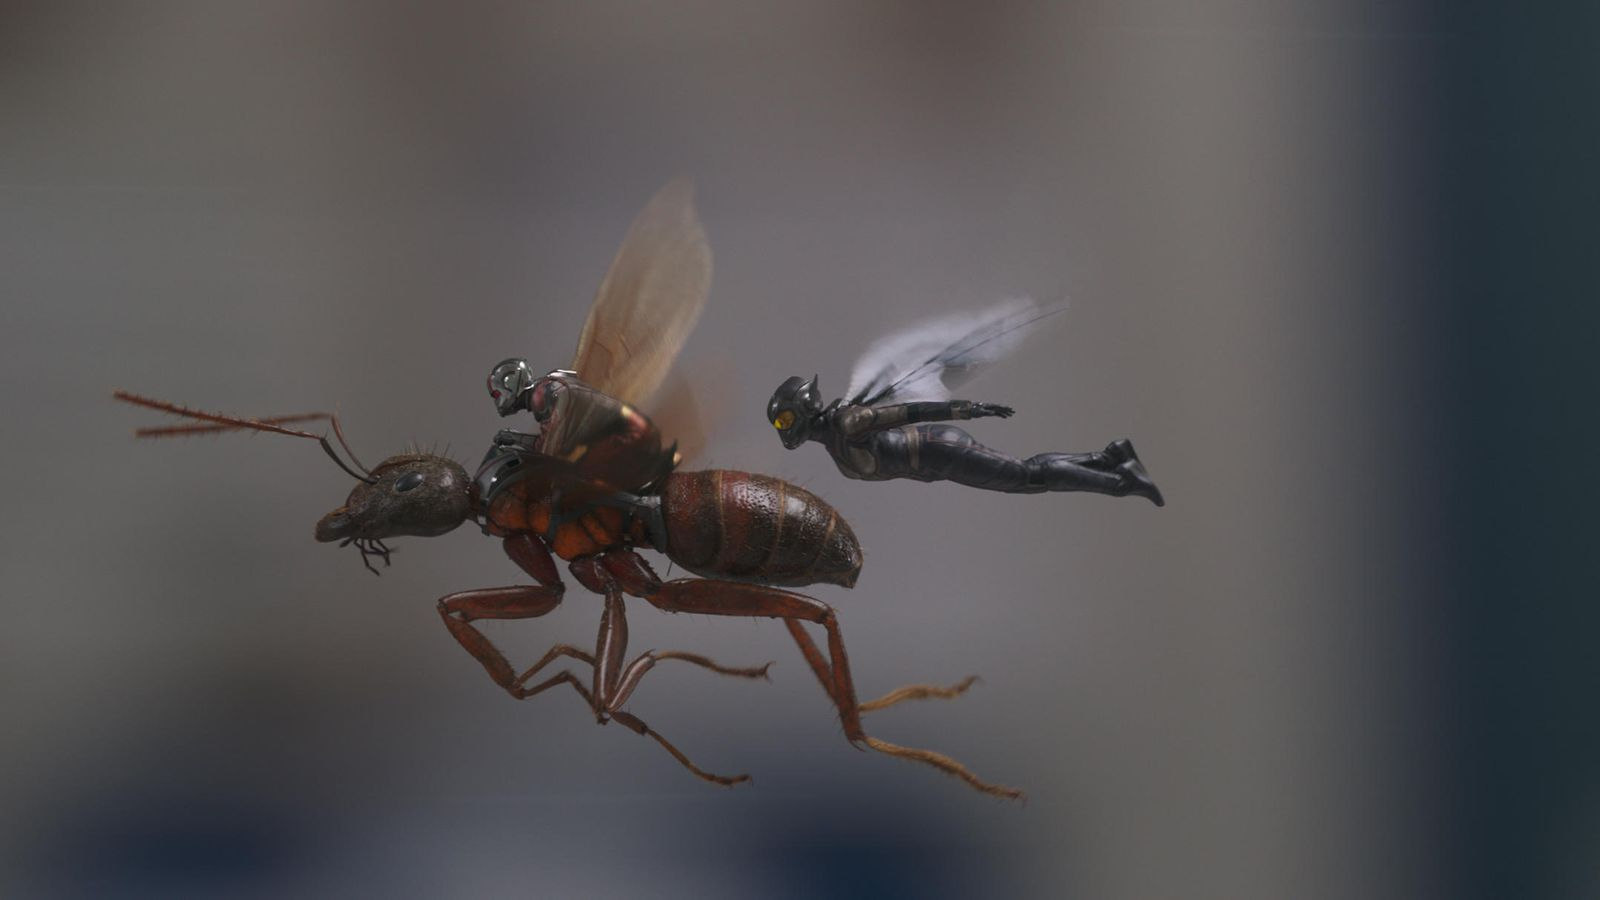 ant-man-wasp-marvel-press-6.jpg (56.18 Kb)